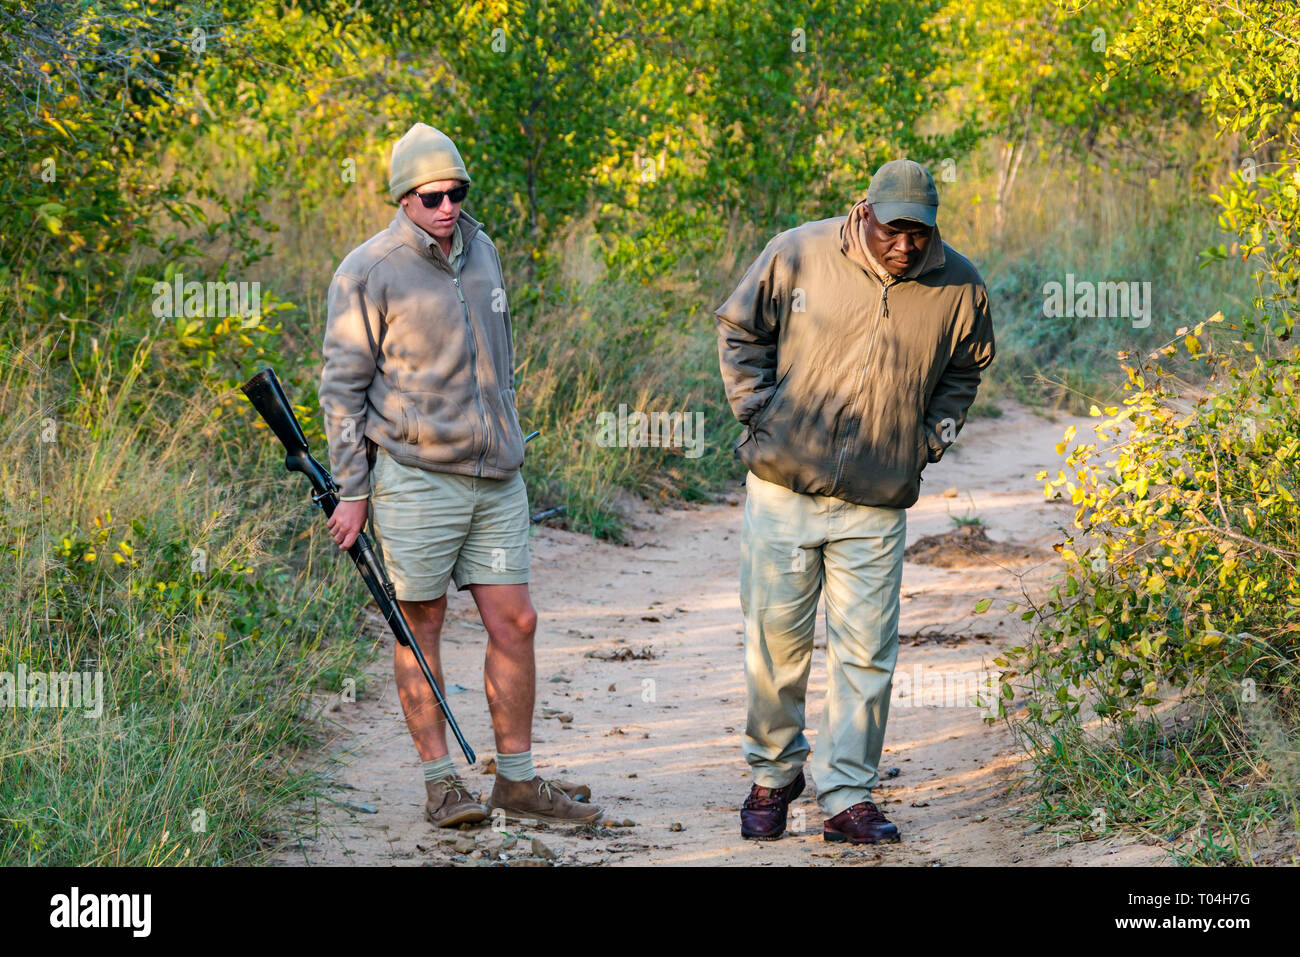 guide-with-rifle-and-black-man-tracker-l